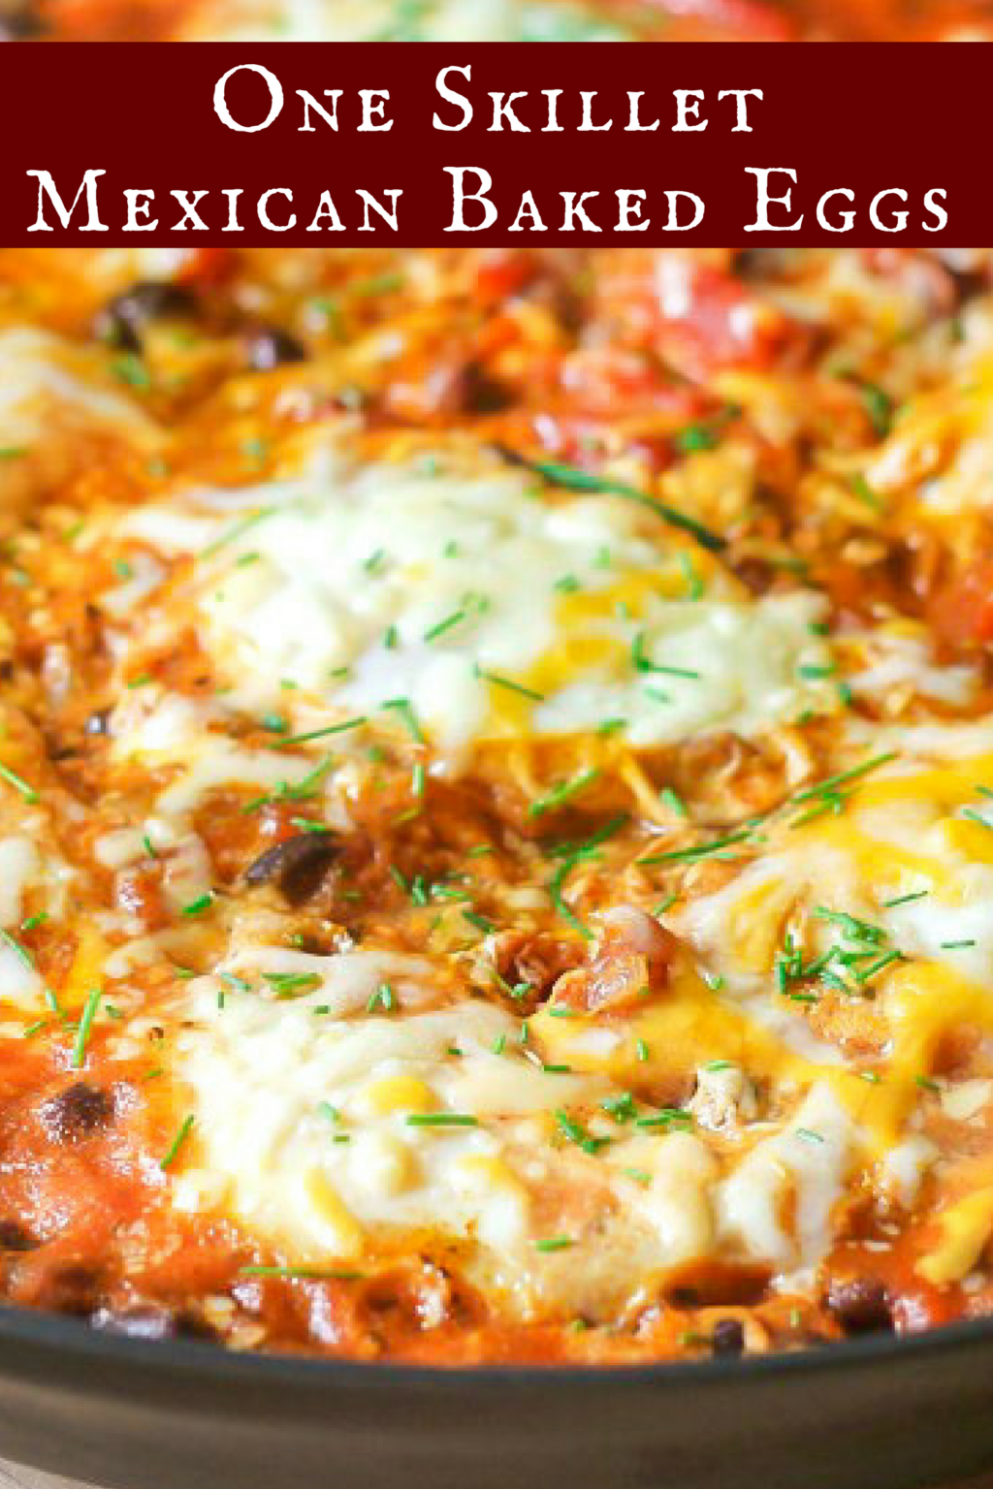 Mexican Baked Eggs (One Skillet) - Healthy Meal Recipes